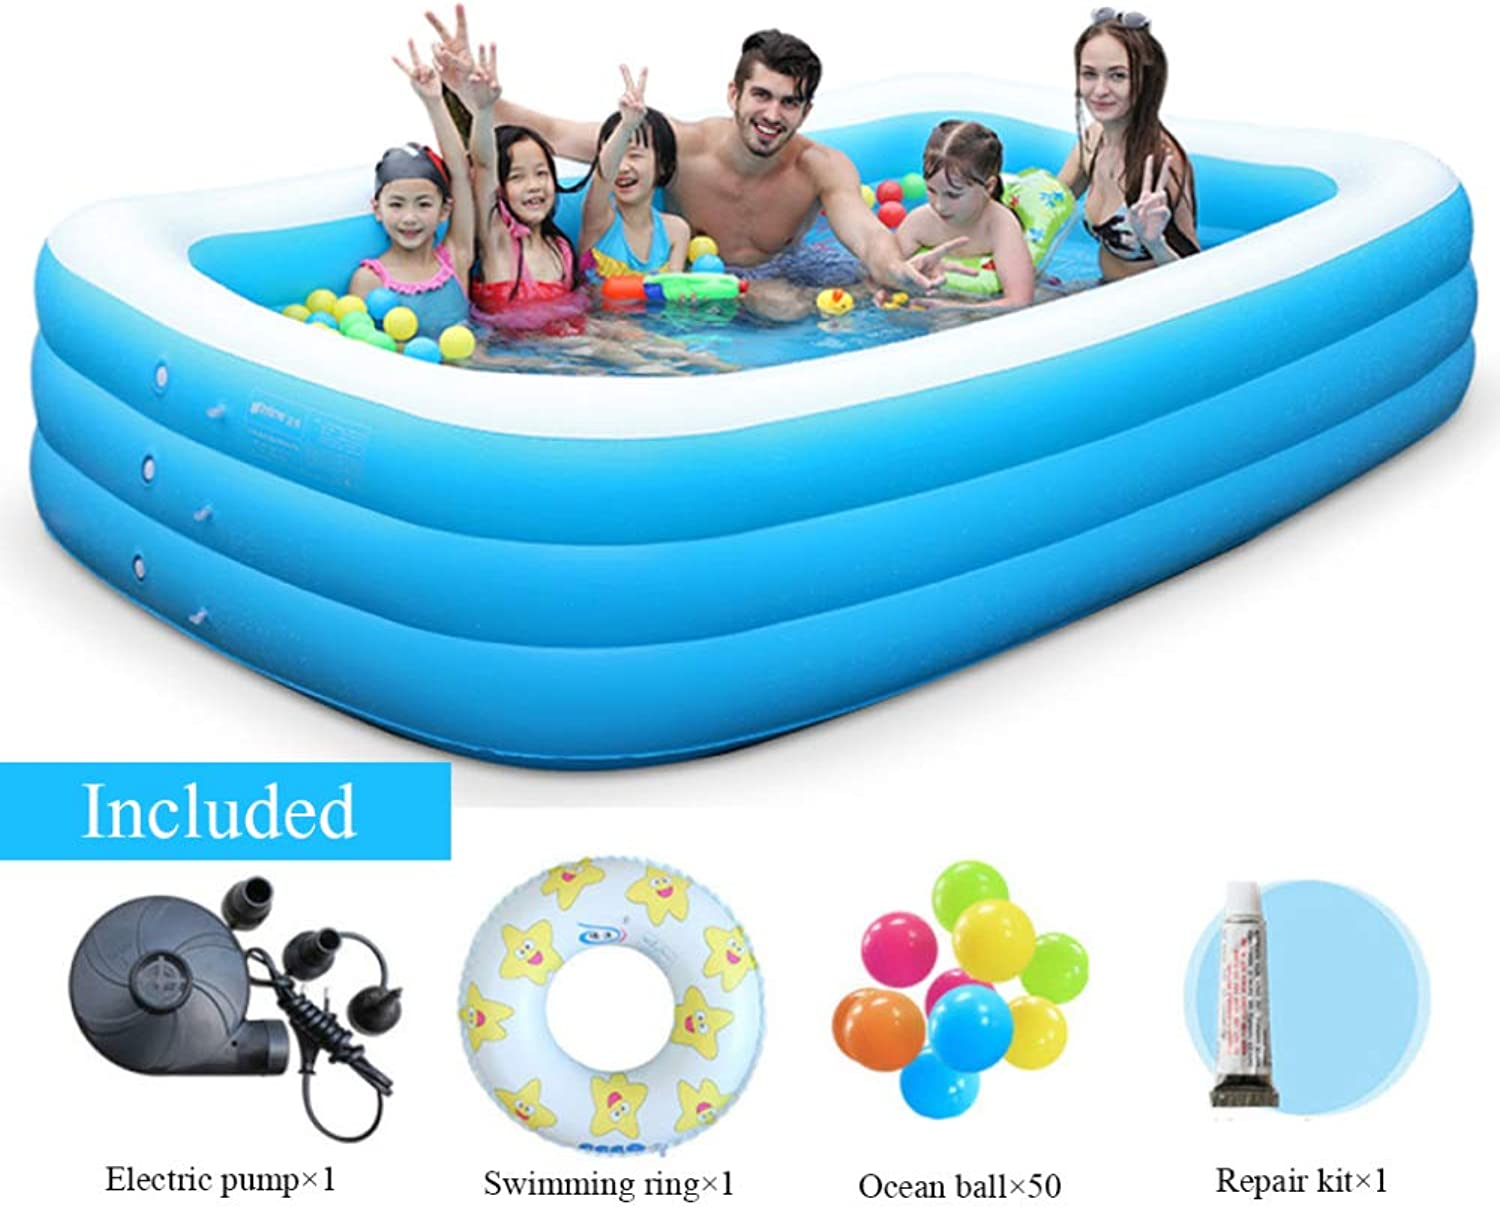 bajo precio del 40% YIRUN Piscina Familiar Rectangular Adult Inflatable Pool For Summer Summer Summer Party Ideal para Niños Adulto Plegable Inflable Gruesas,305×183×72cm 10×6×2.36ft  preferente